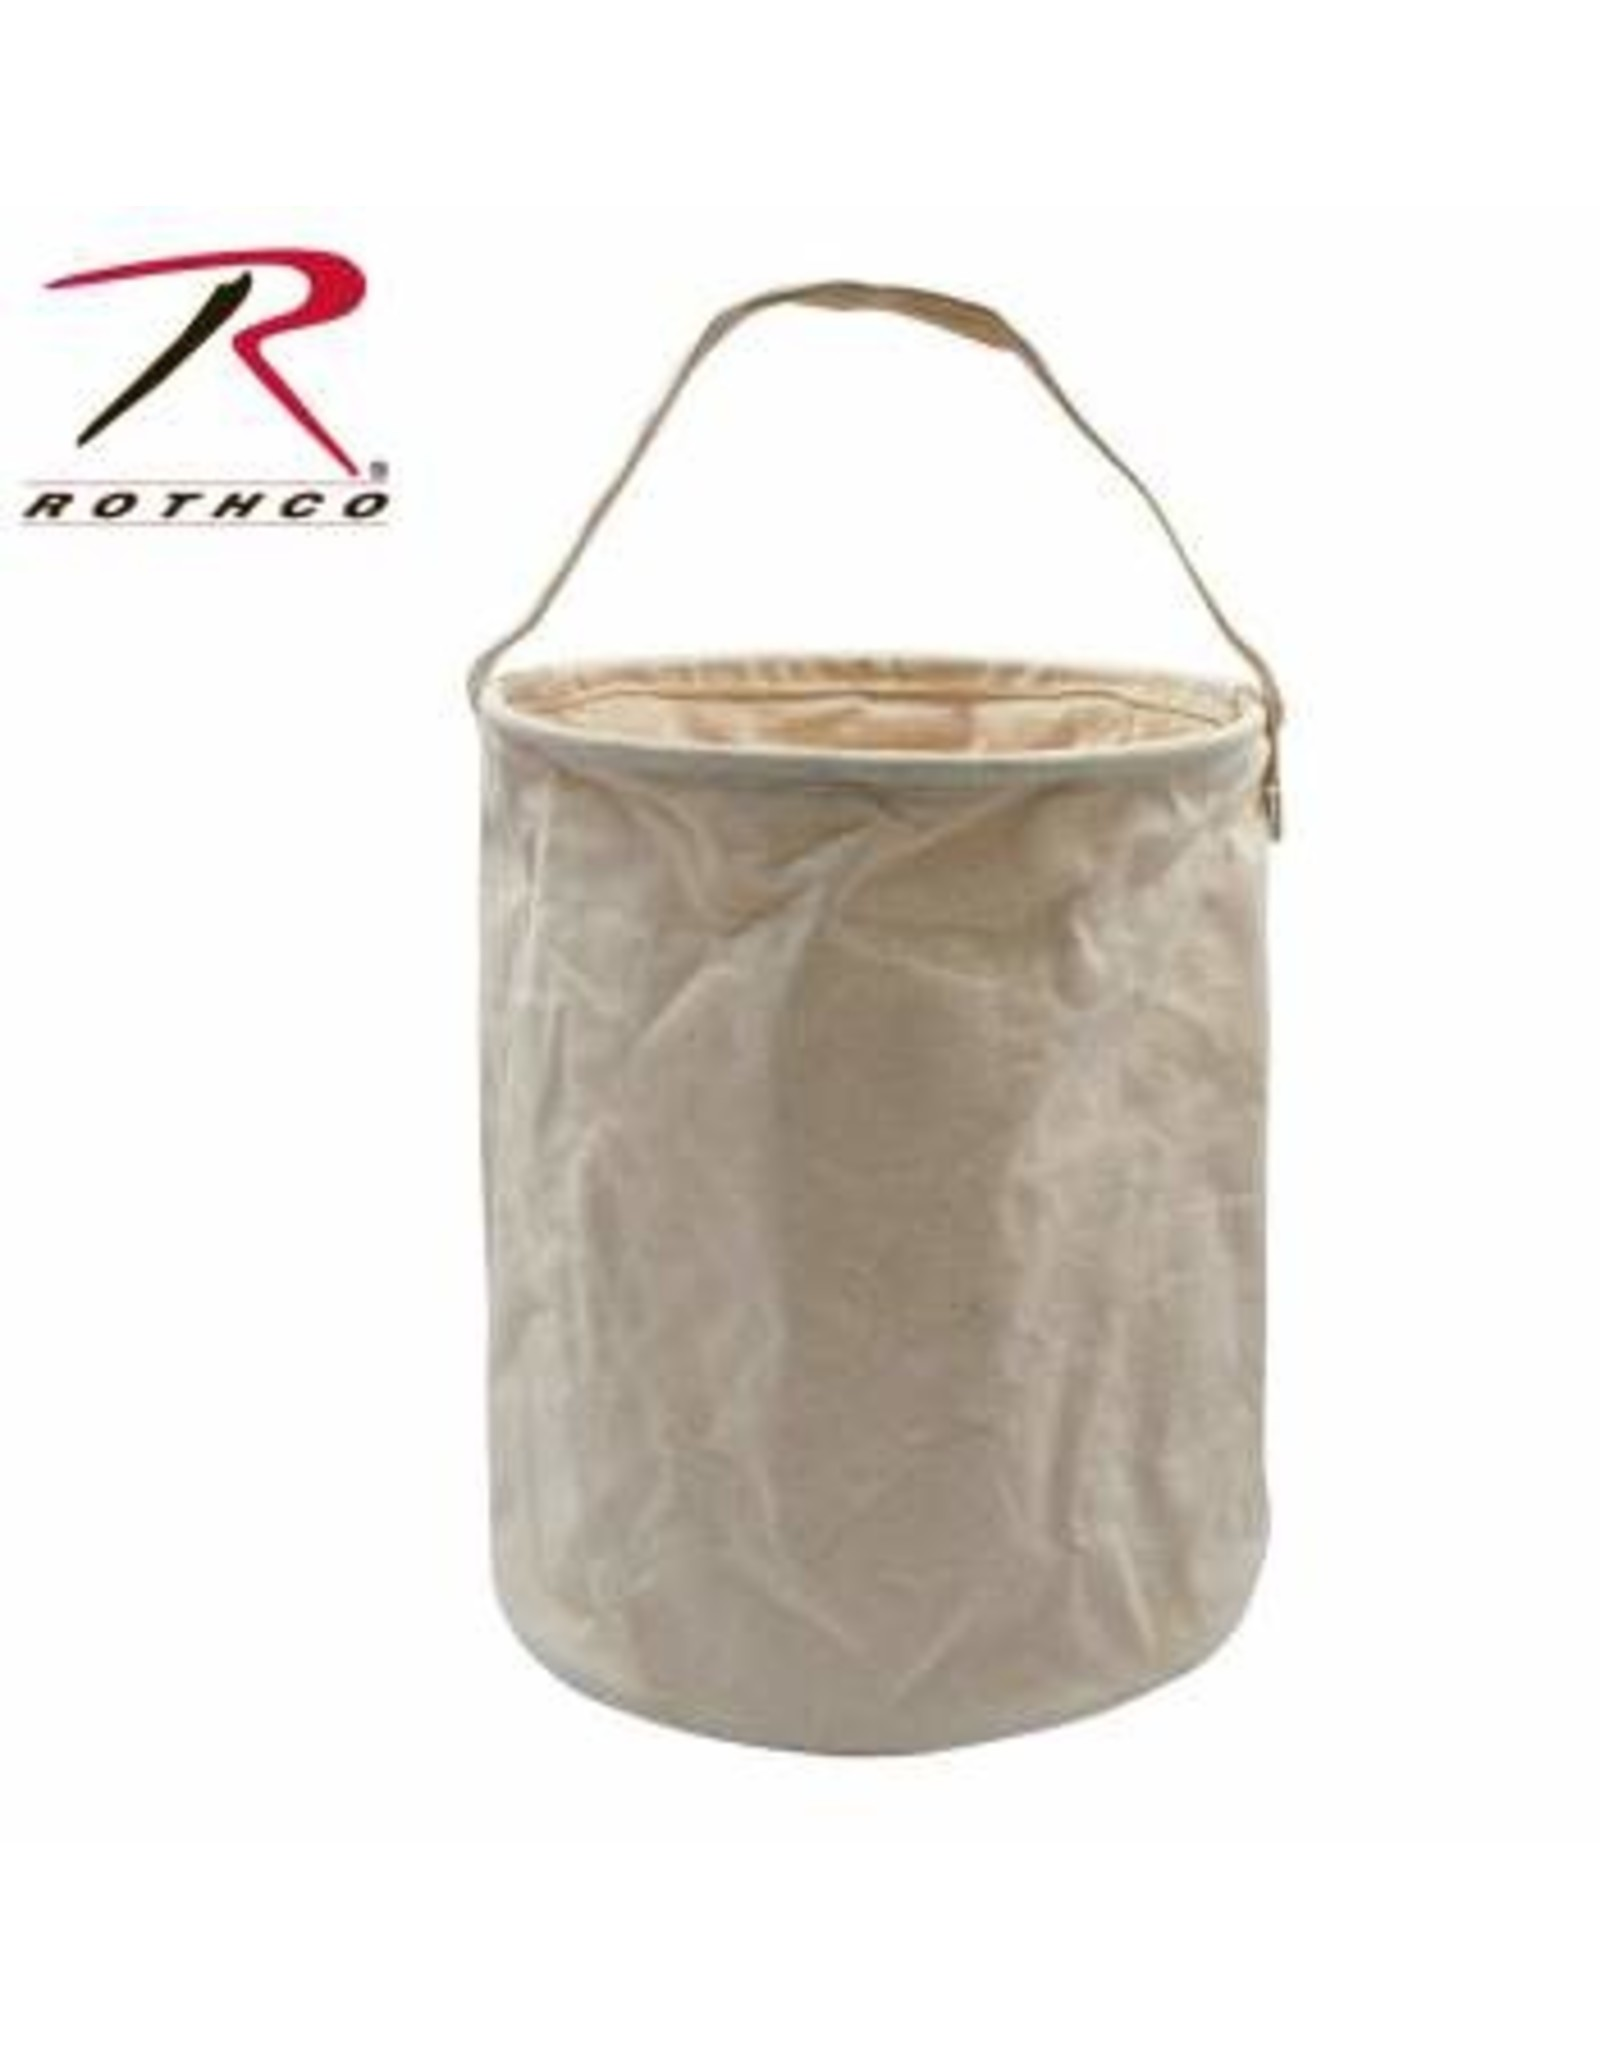 ROTHCO CANVAS MEDIUM WATER BUCKET